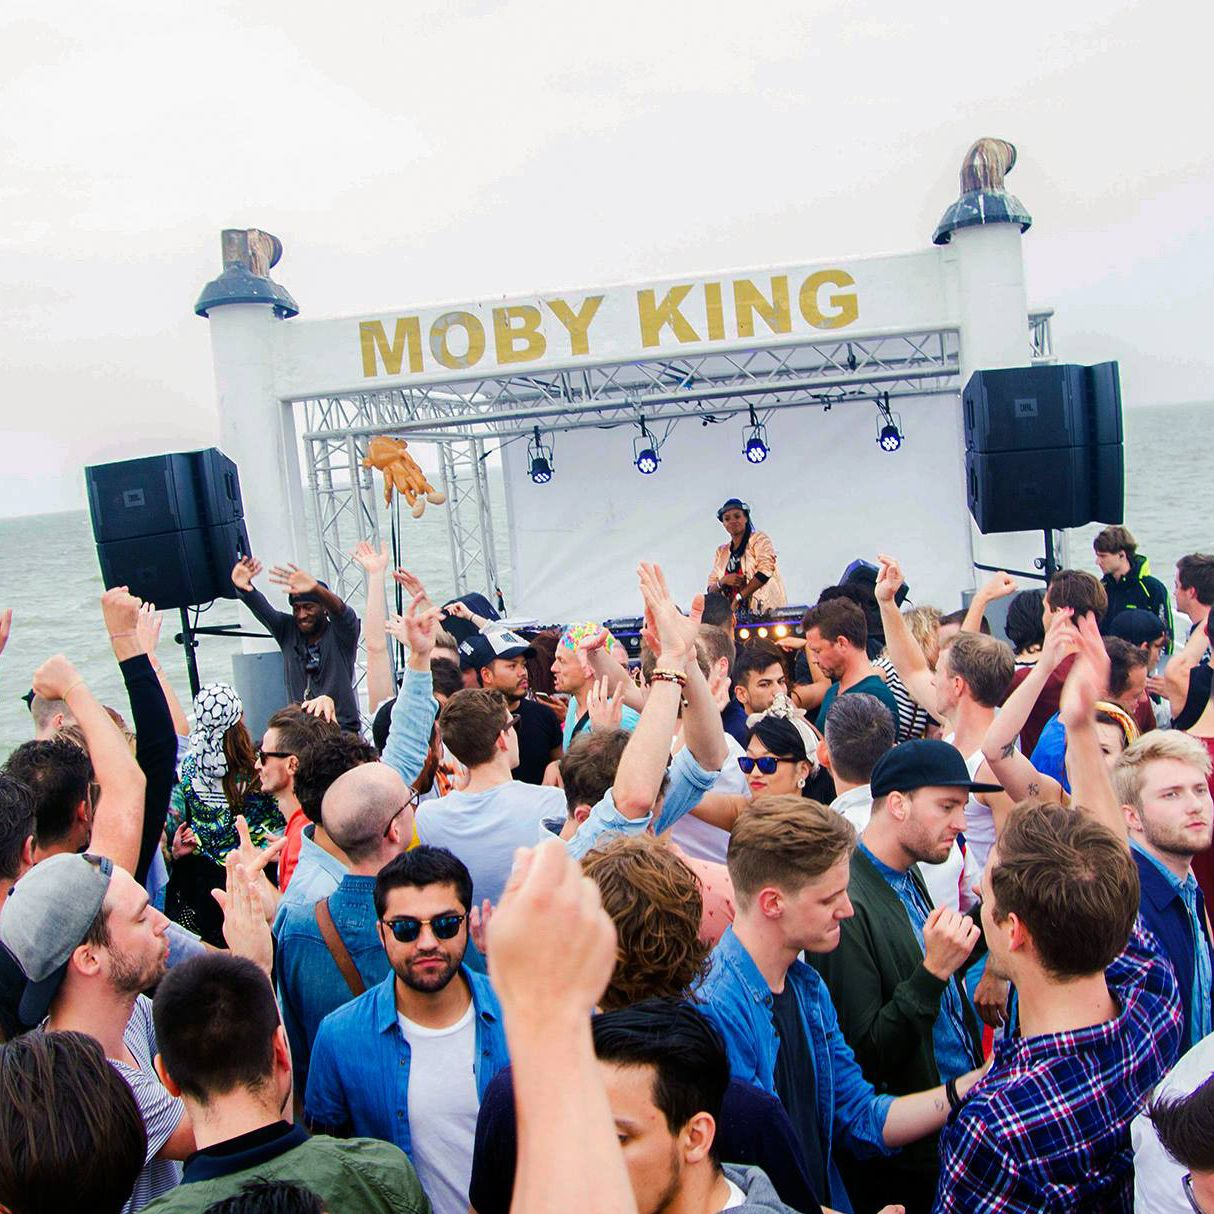 cruise gay lgtb boat party amsterdam